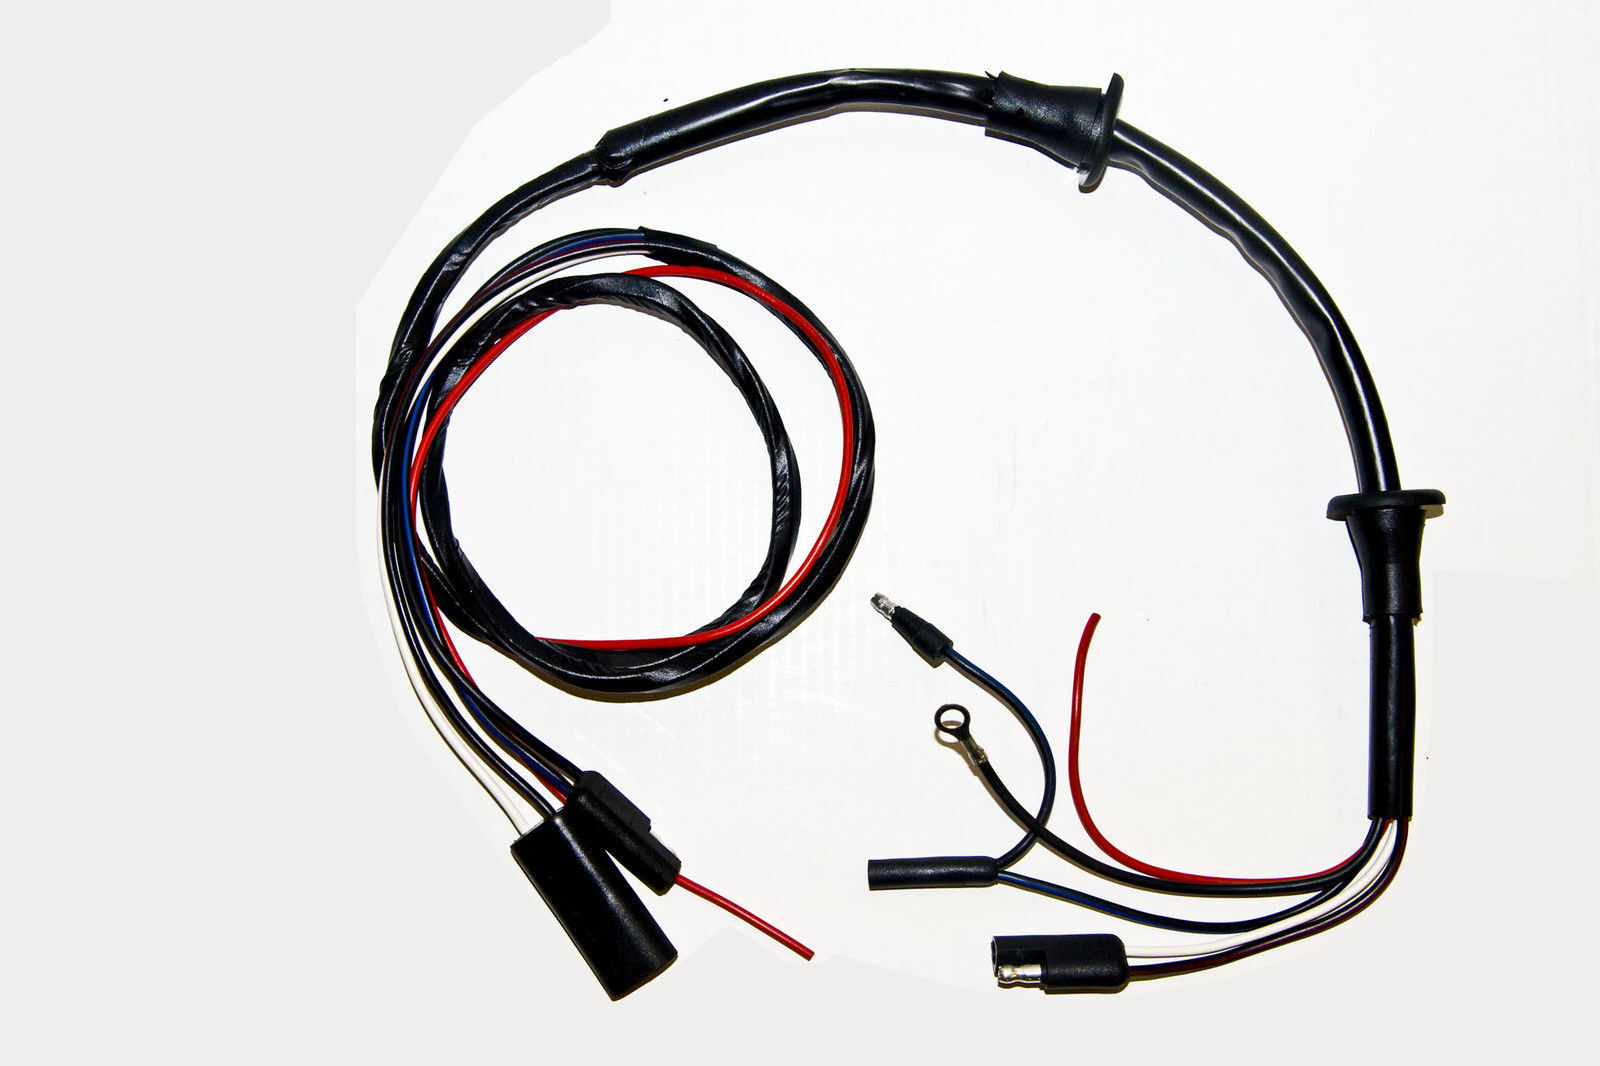 small resolution of 1967 1968 ford mustang door courtesy light and speaker wire harness